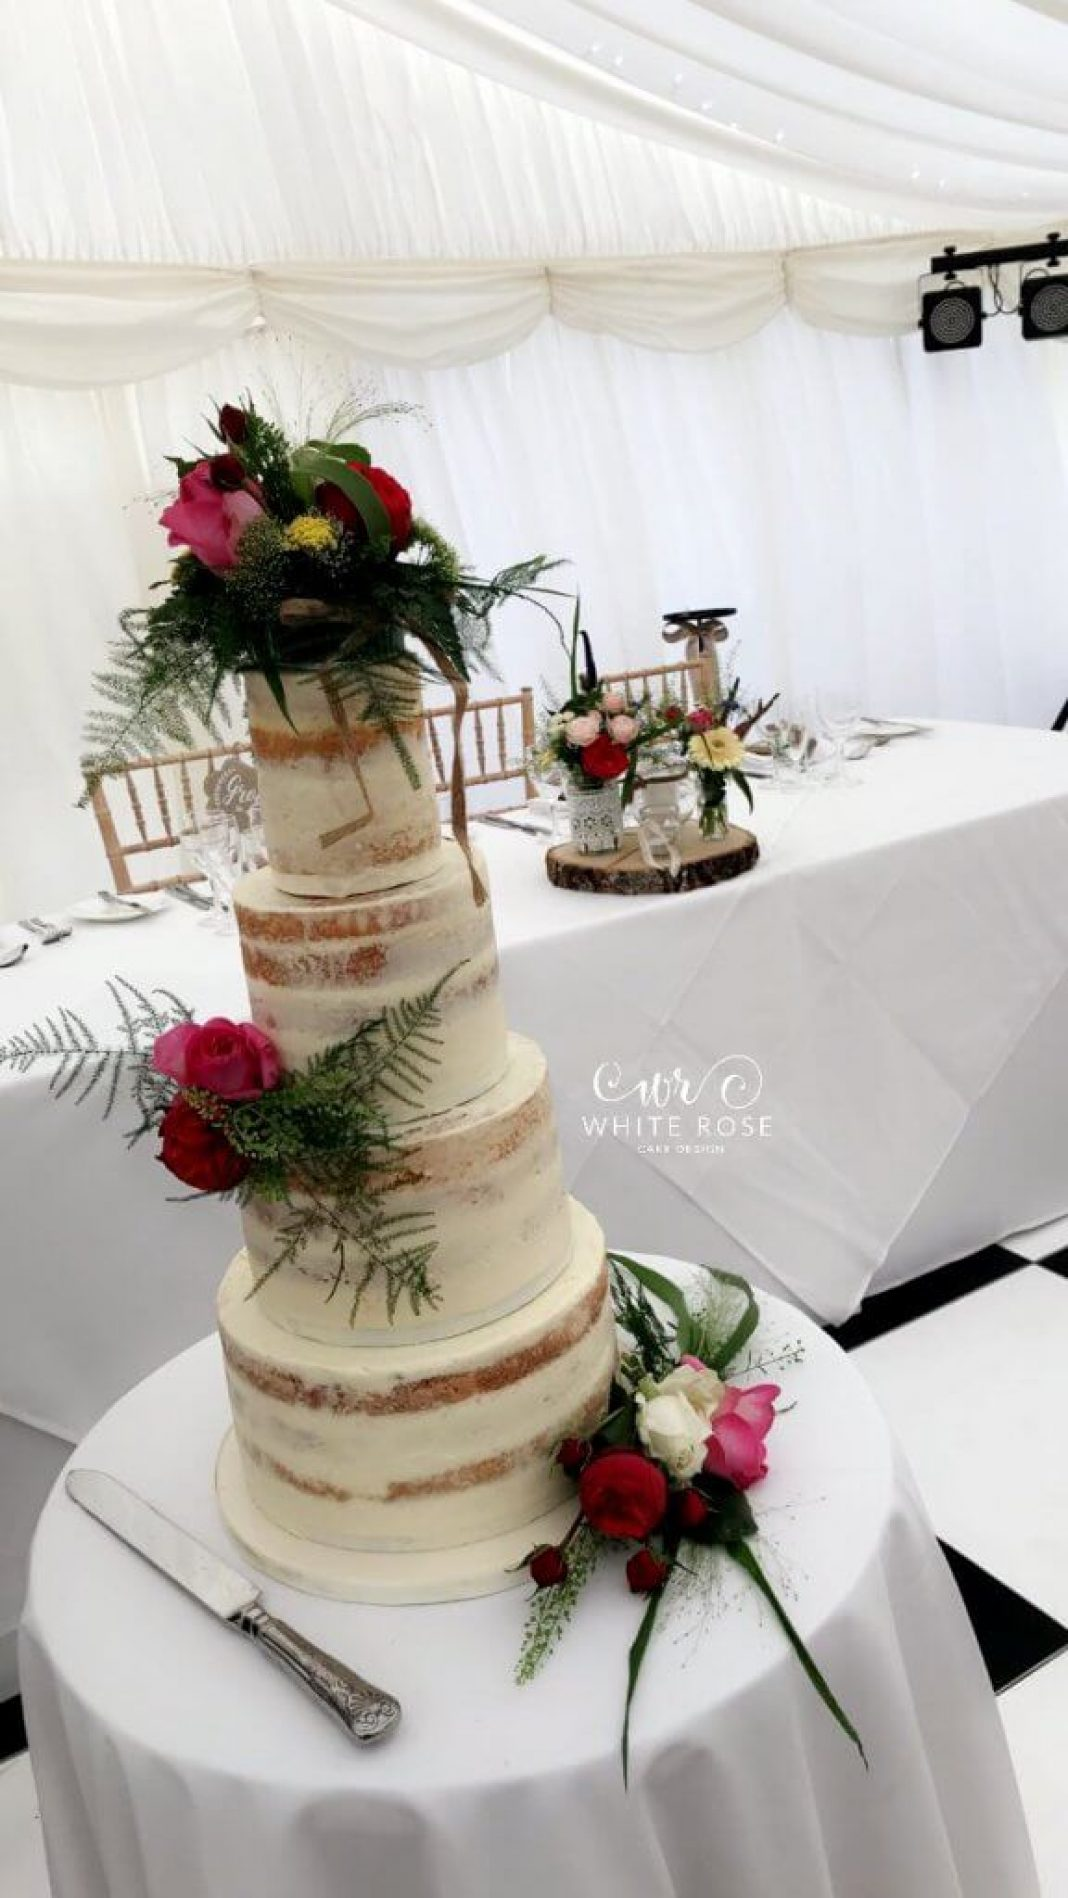 Four Tier Semi-Naked Wedding Cake with Fresh Flowers by White Rose Cake Design Cake Maker The 3 Acres Huddersfield